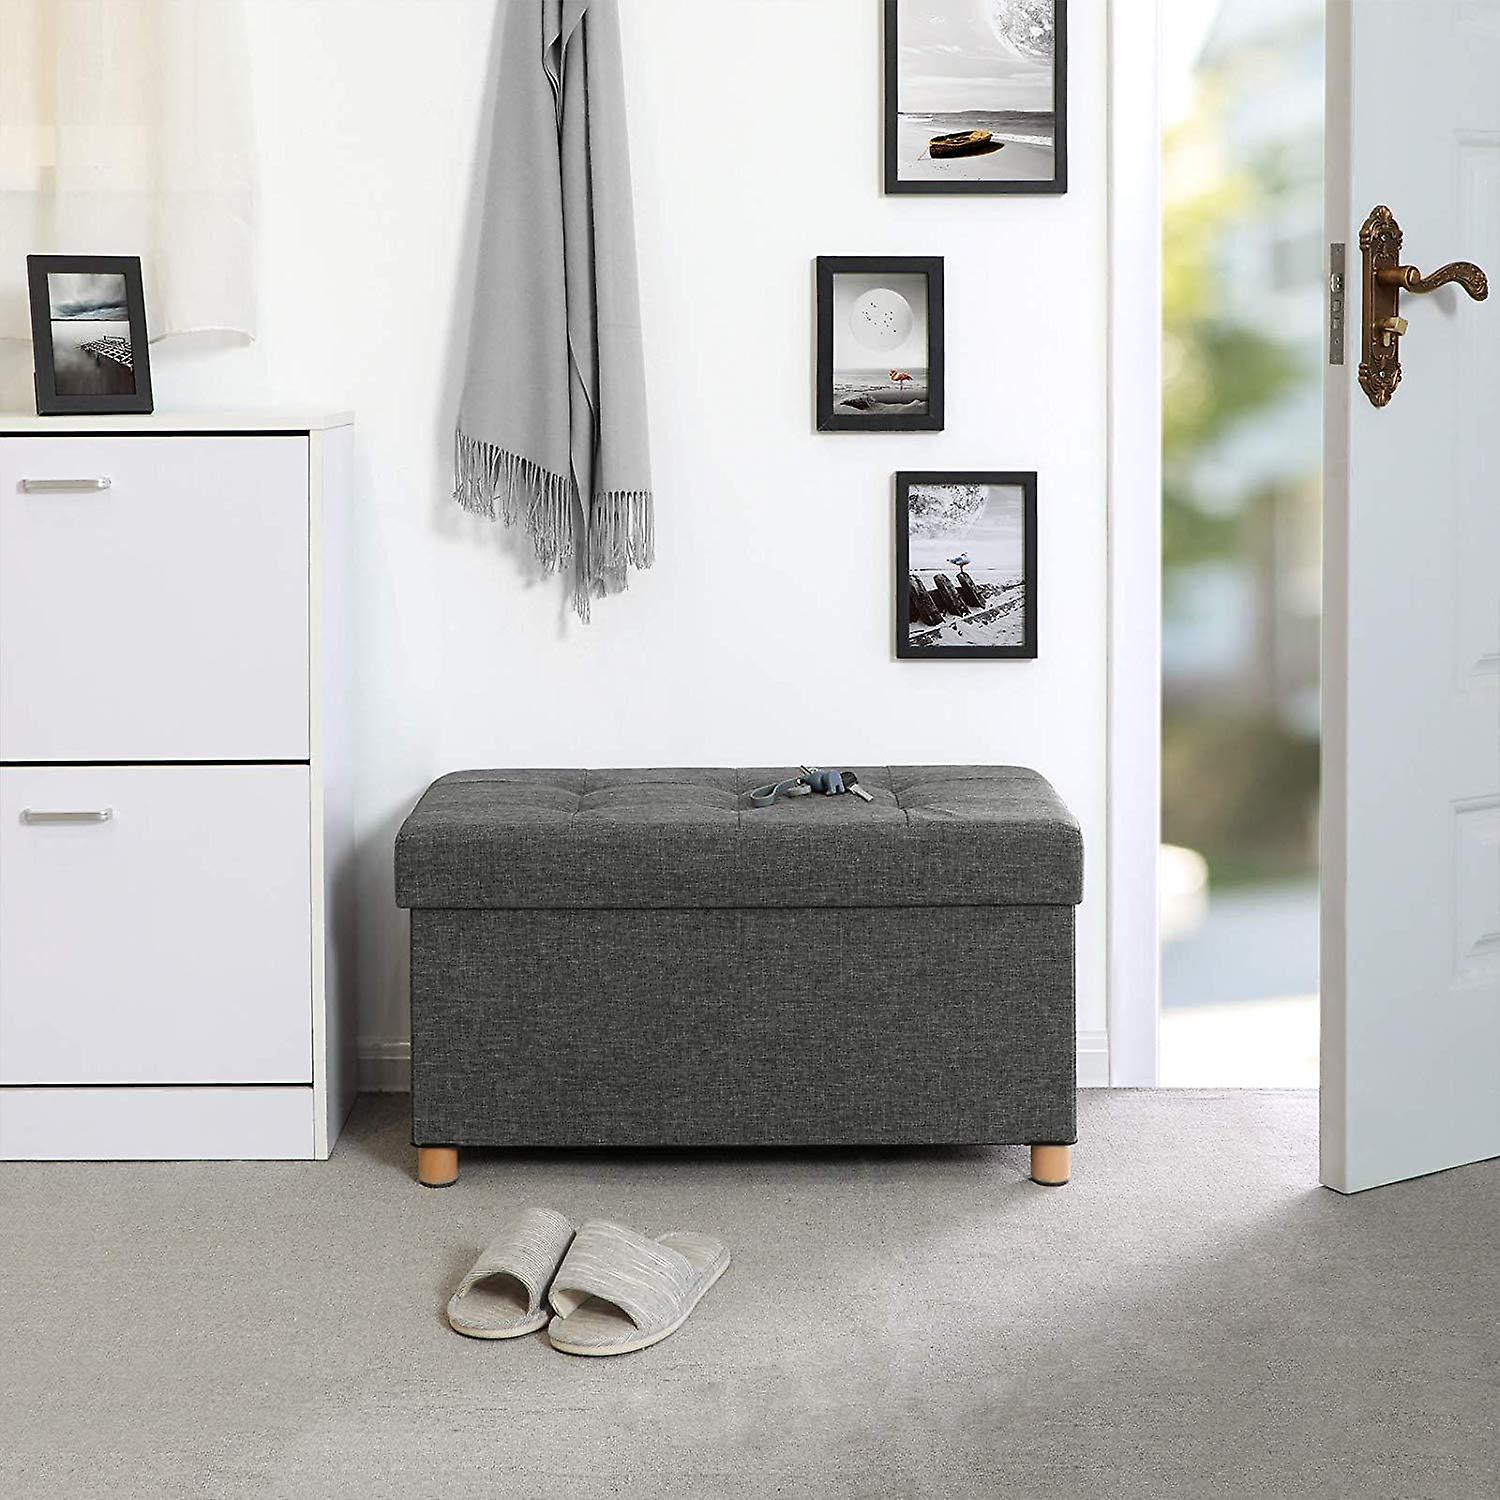 Linen Hocker with storage space and wooden legs-76 x 38 x 40 cm